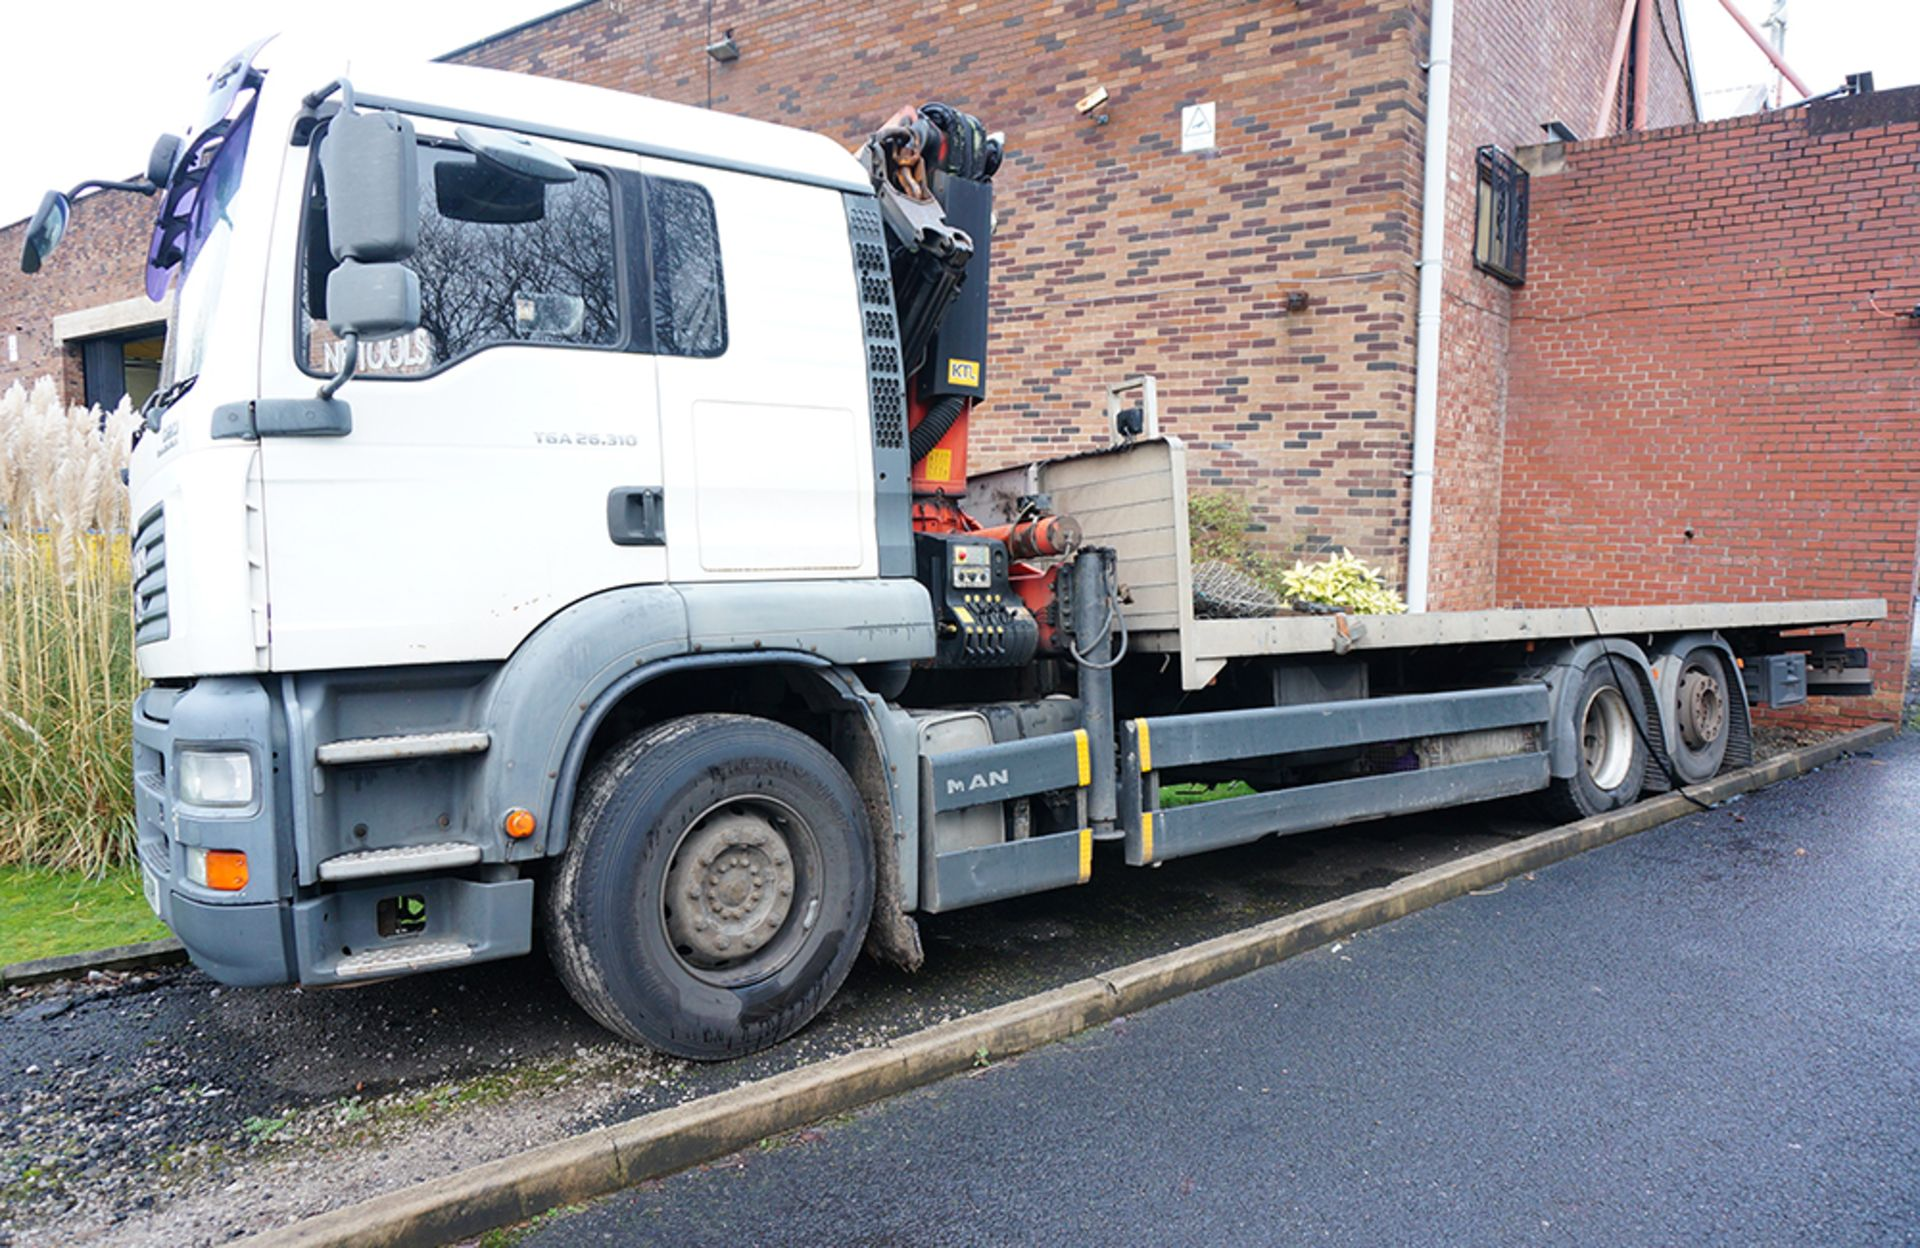 MAN TGA 26.310 Flatbed Lorry with Palfinger PK23002 Crane. 26,000KG Gross Weight. Year 2006. - Image 3 of 20